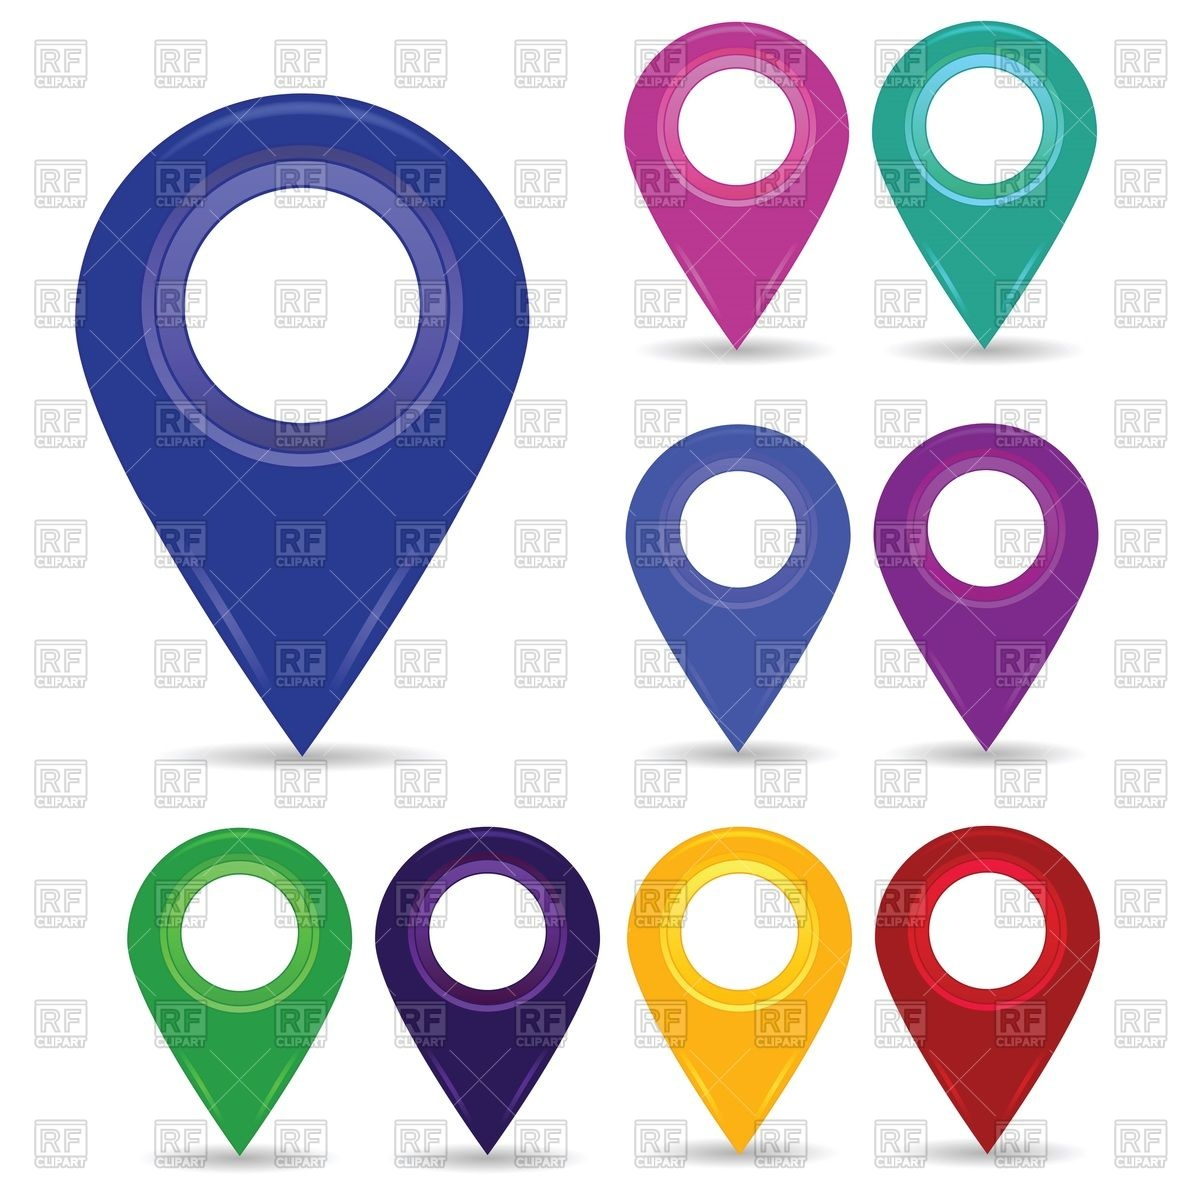 Colorful map pins or pointers Vector Image #63475.